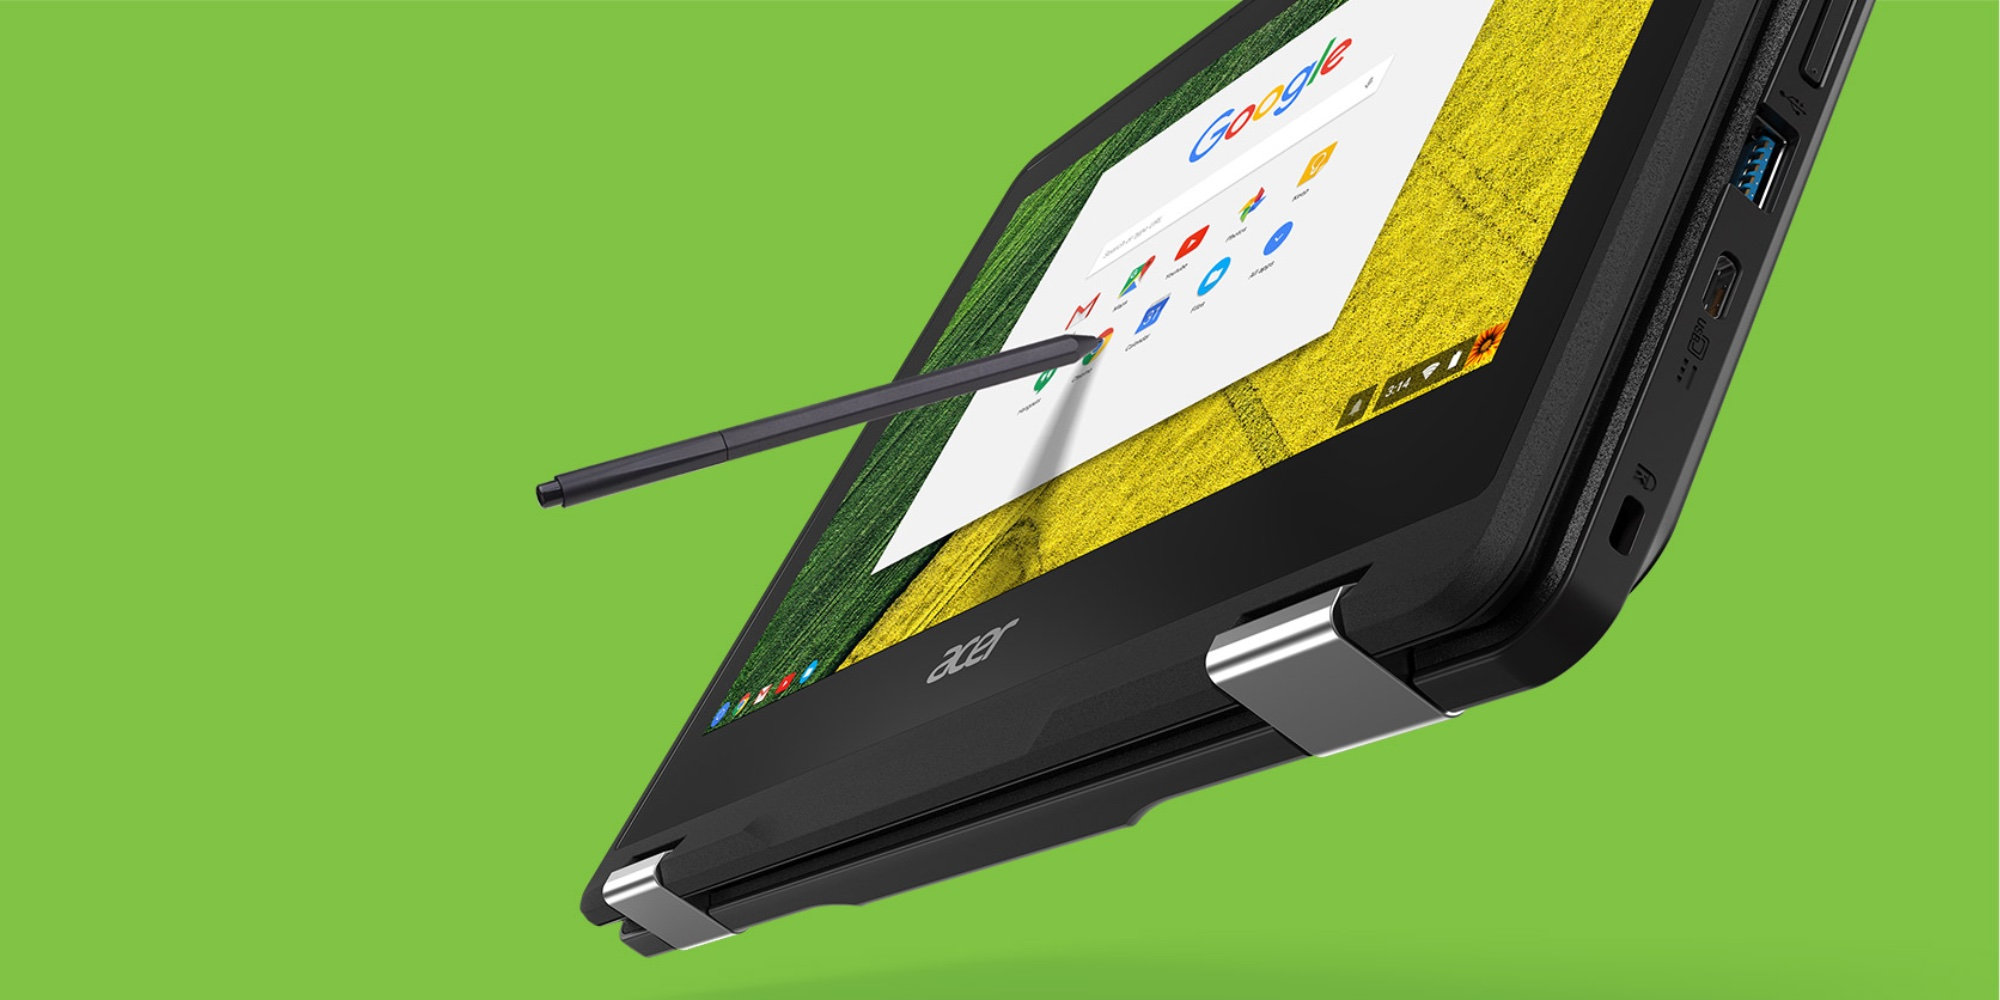 Acer Spin 11 Chromebook delivers a 2-in-1 design at $179 (New low, $100 off) - 9to5Toys